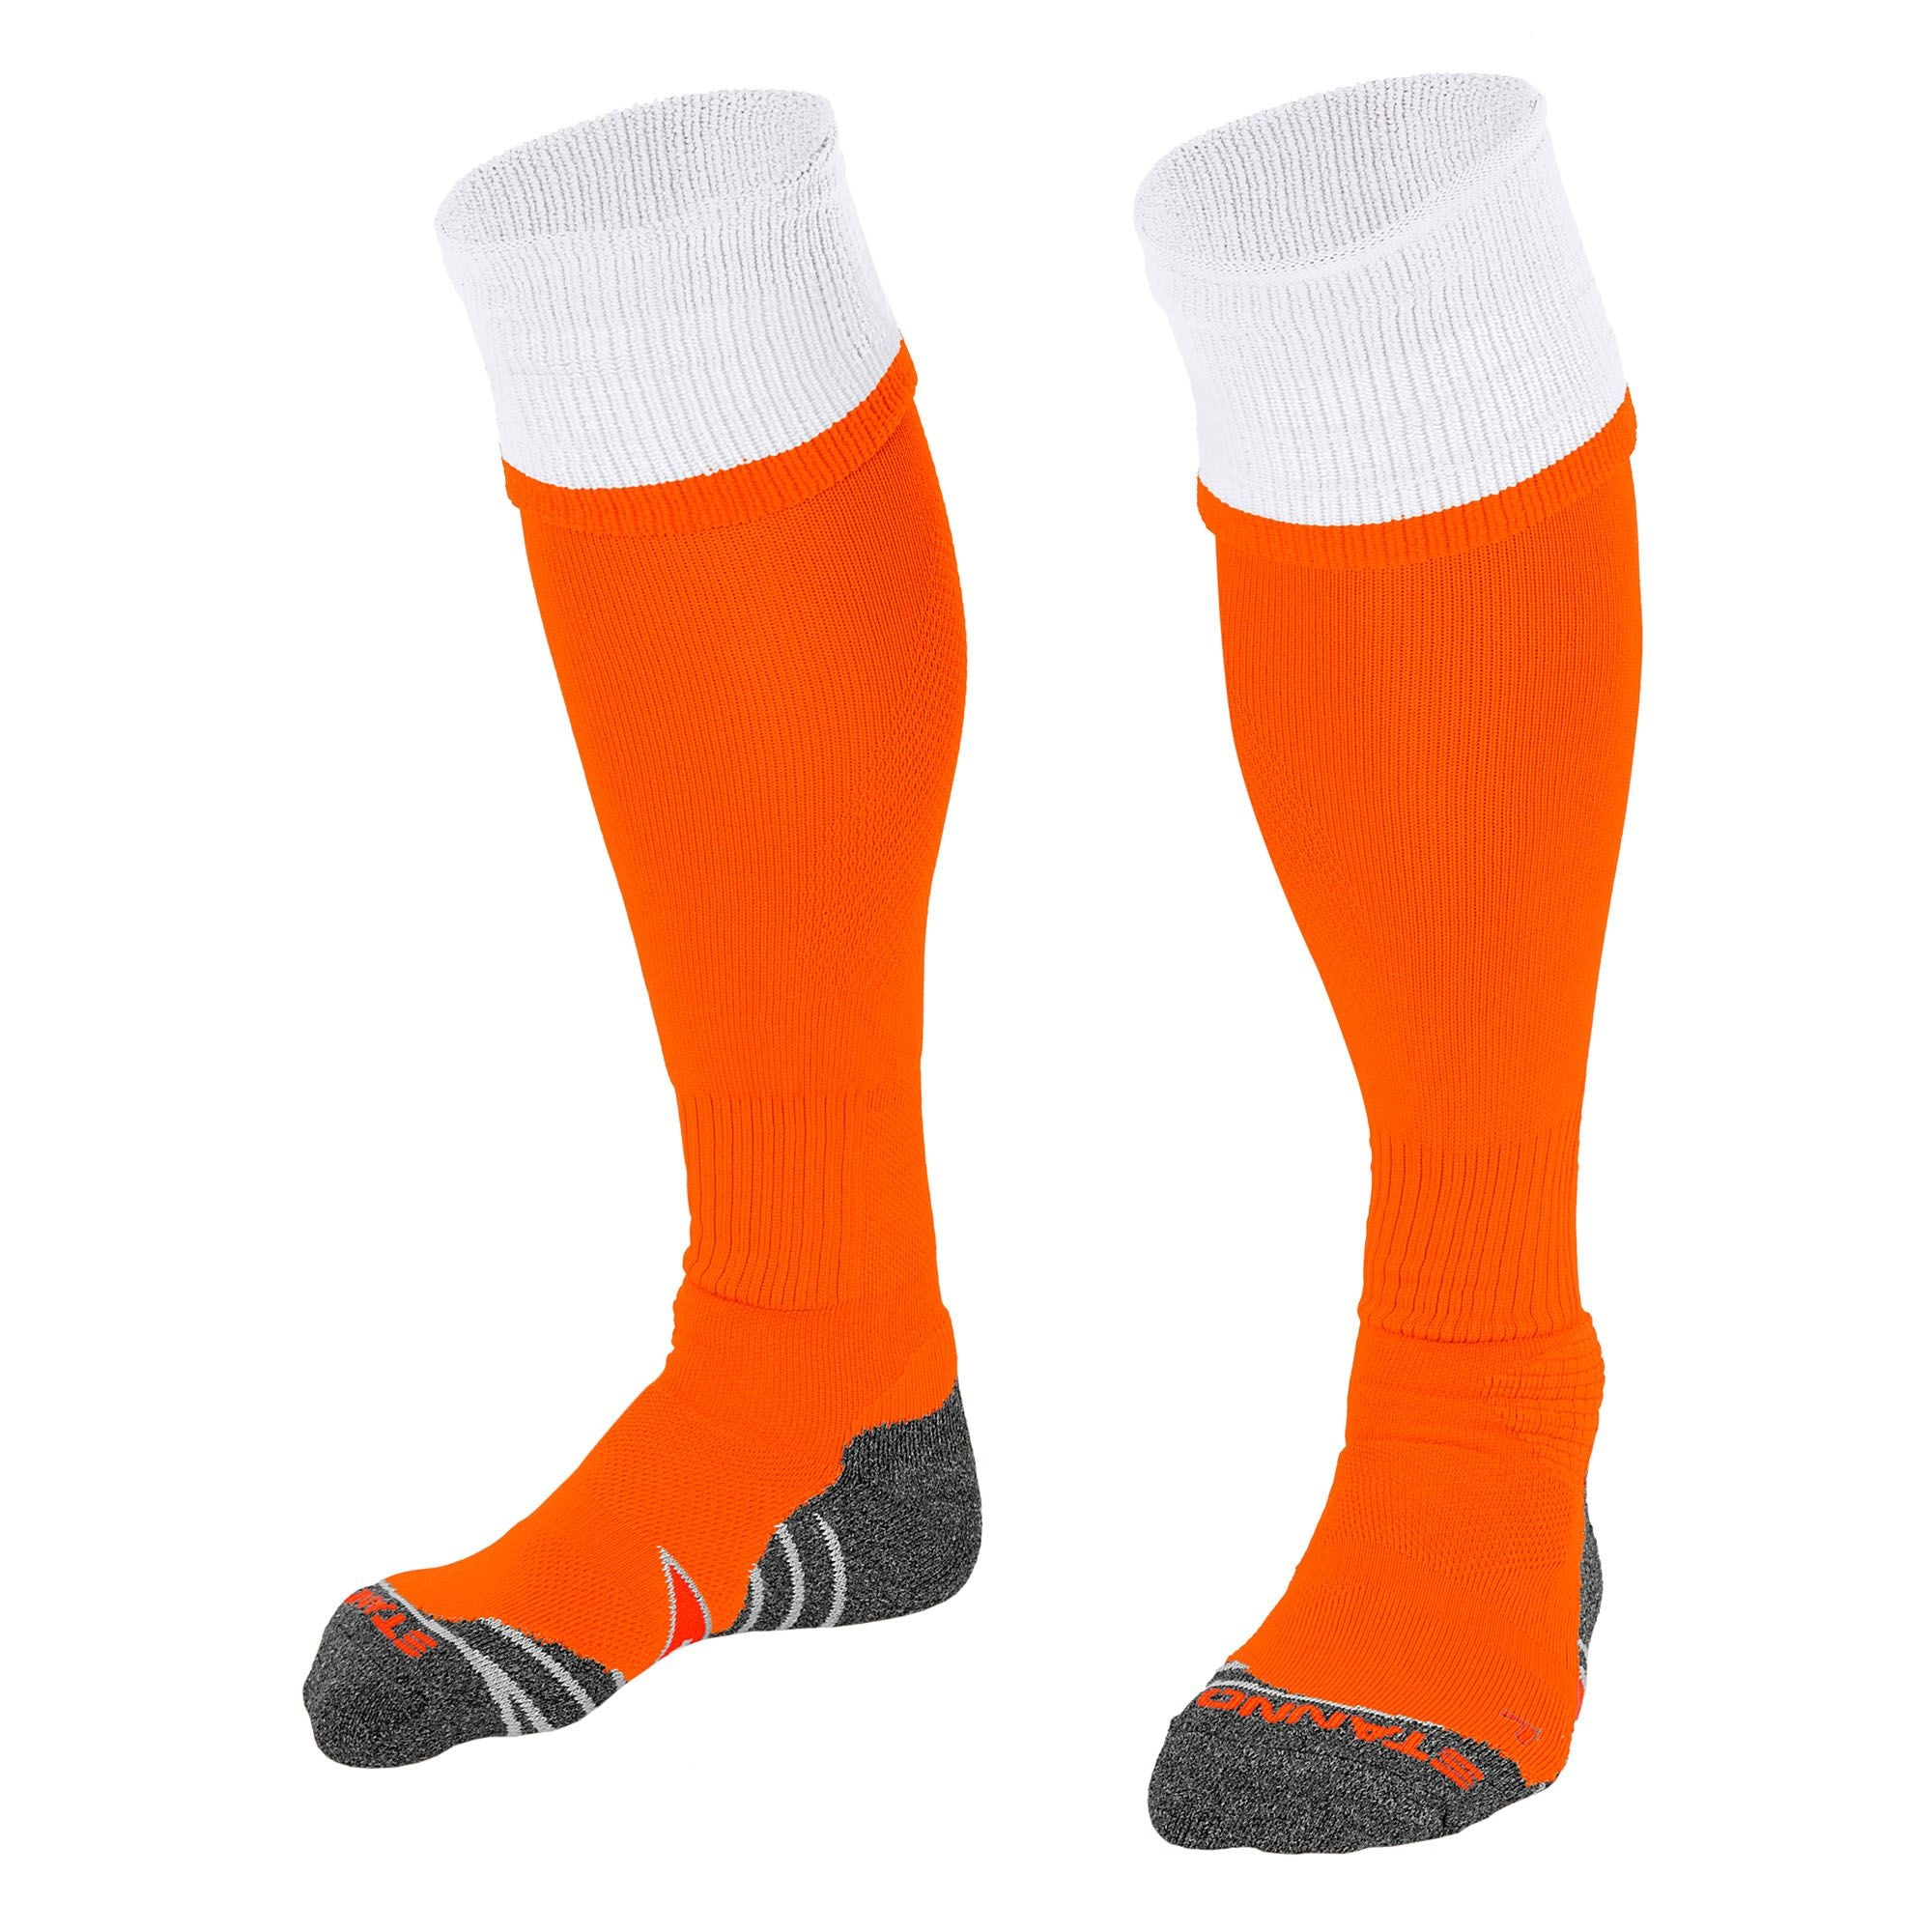 Stanno Combi Sock in orange with white contrast tops